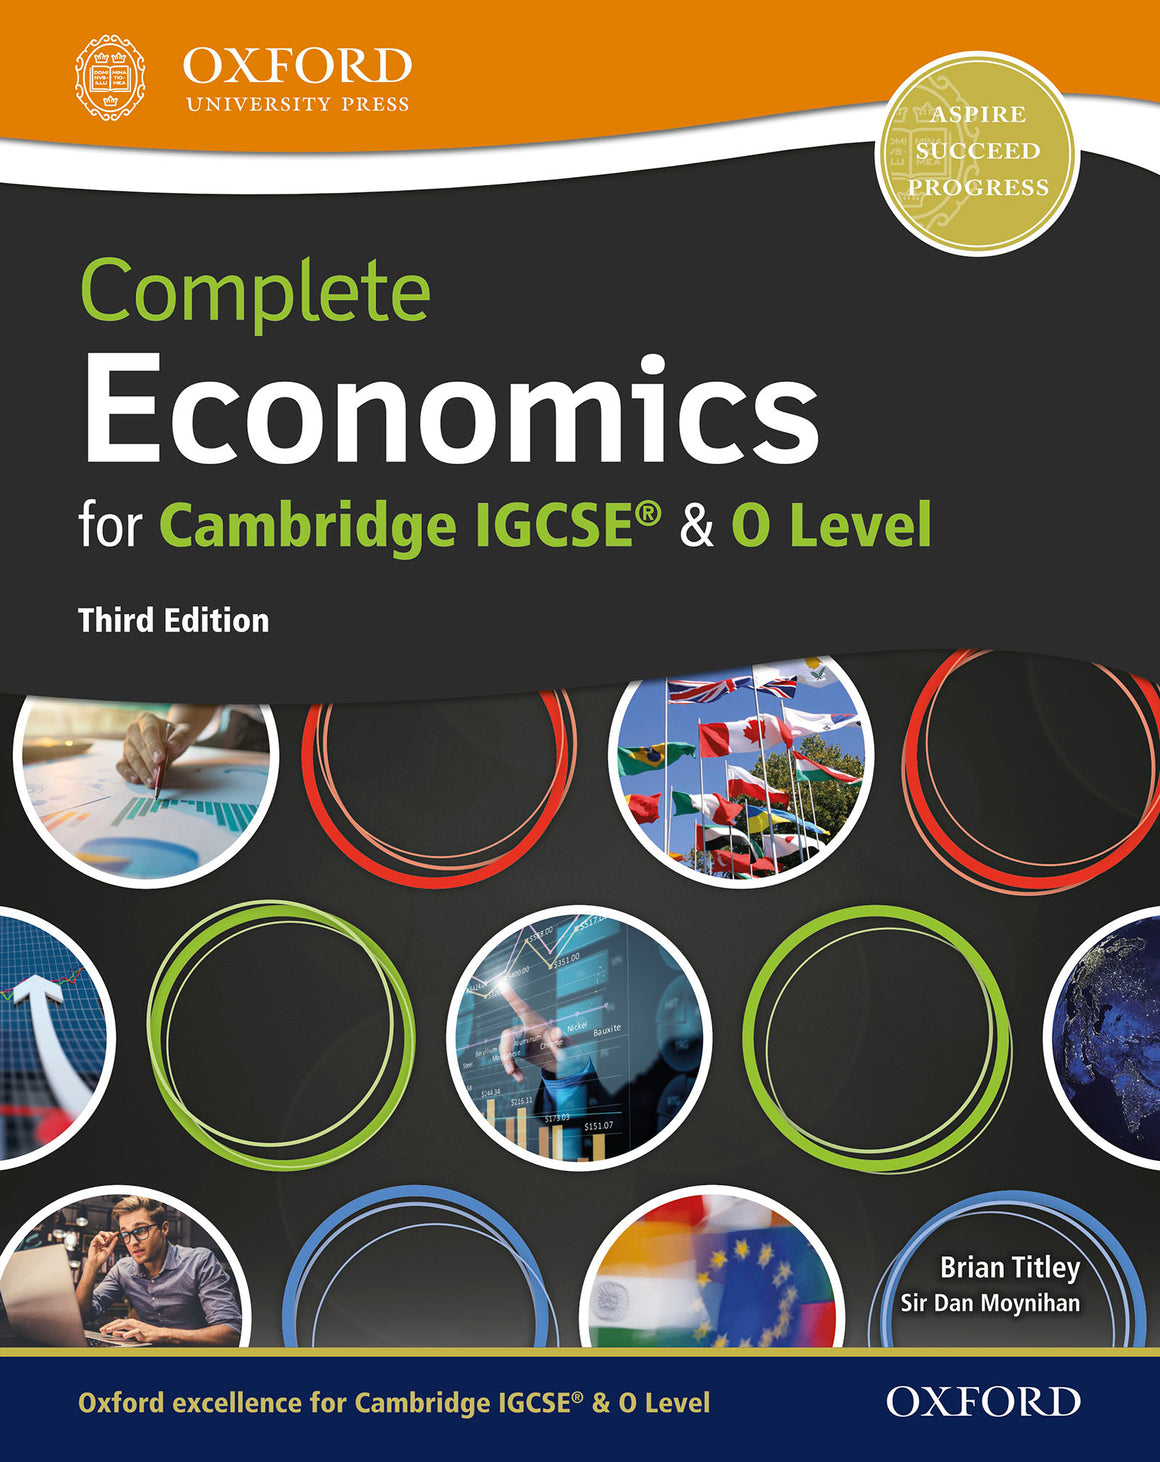 Complete Economics for Cambridge IGCSE® and O Level